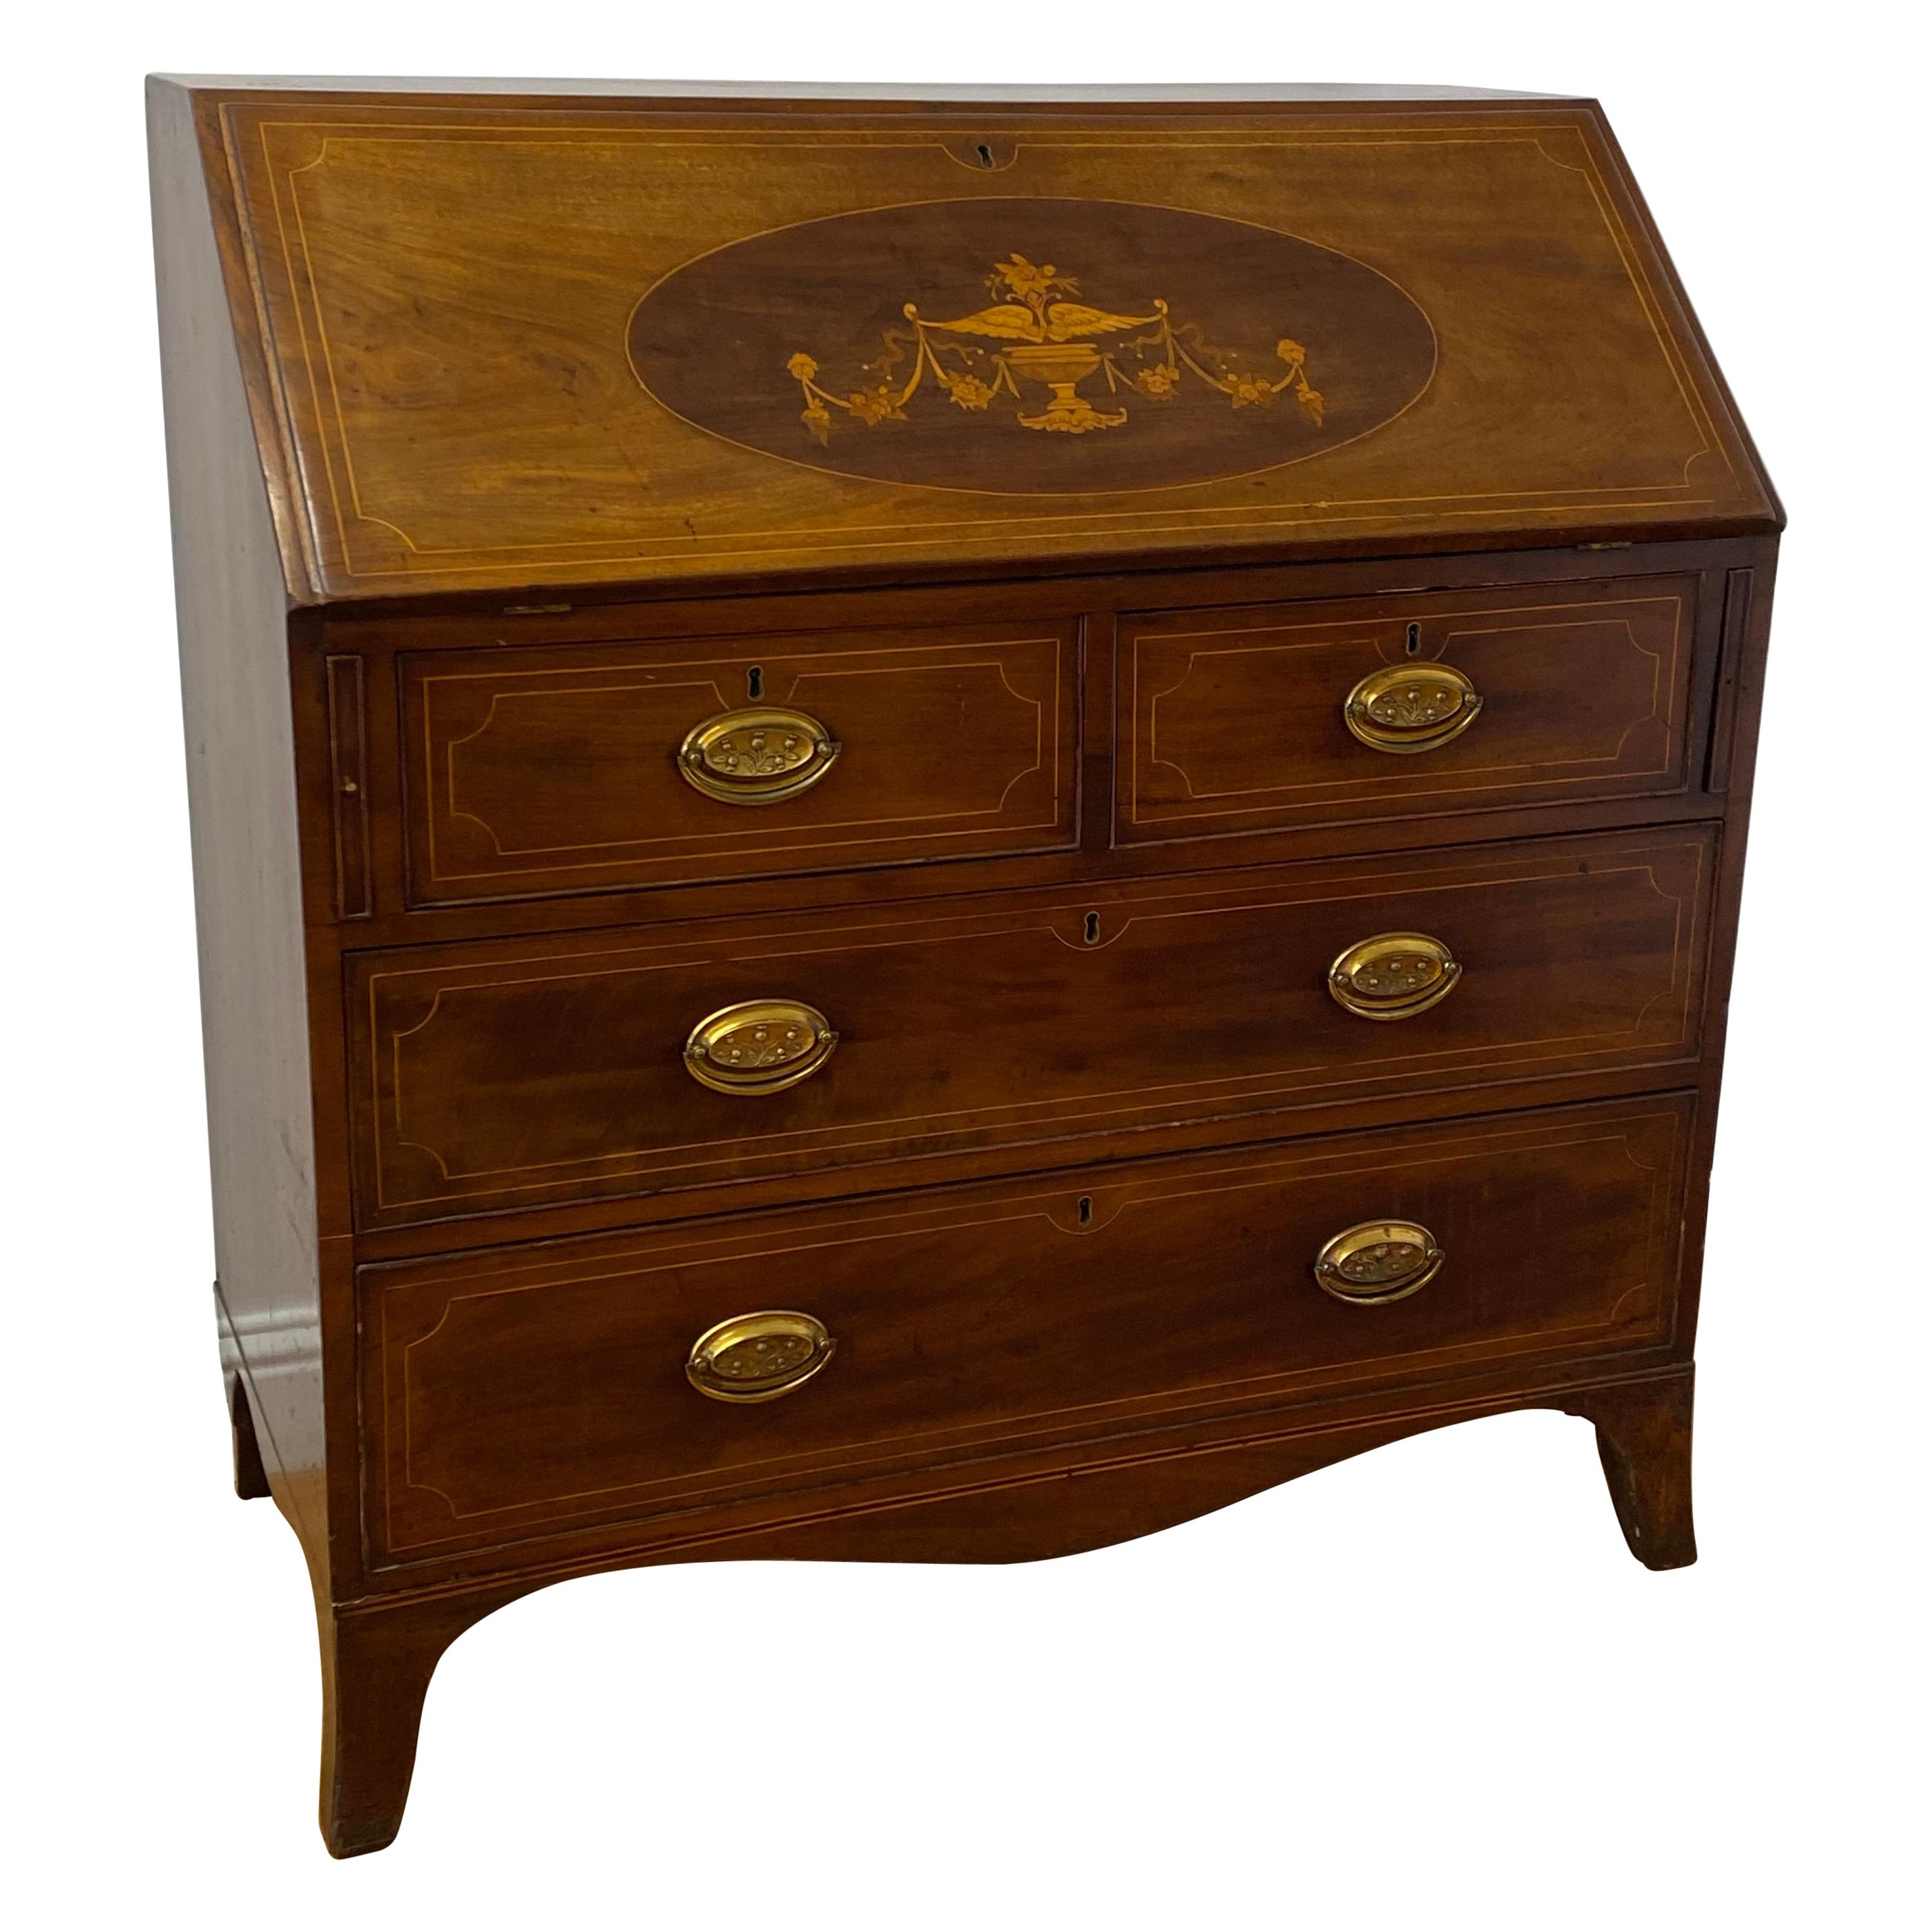 19th Century Walnut & Mahogany Drop Front Bureau Desk